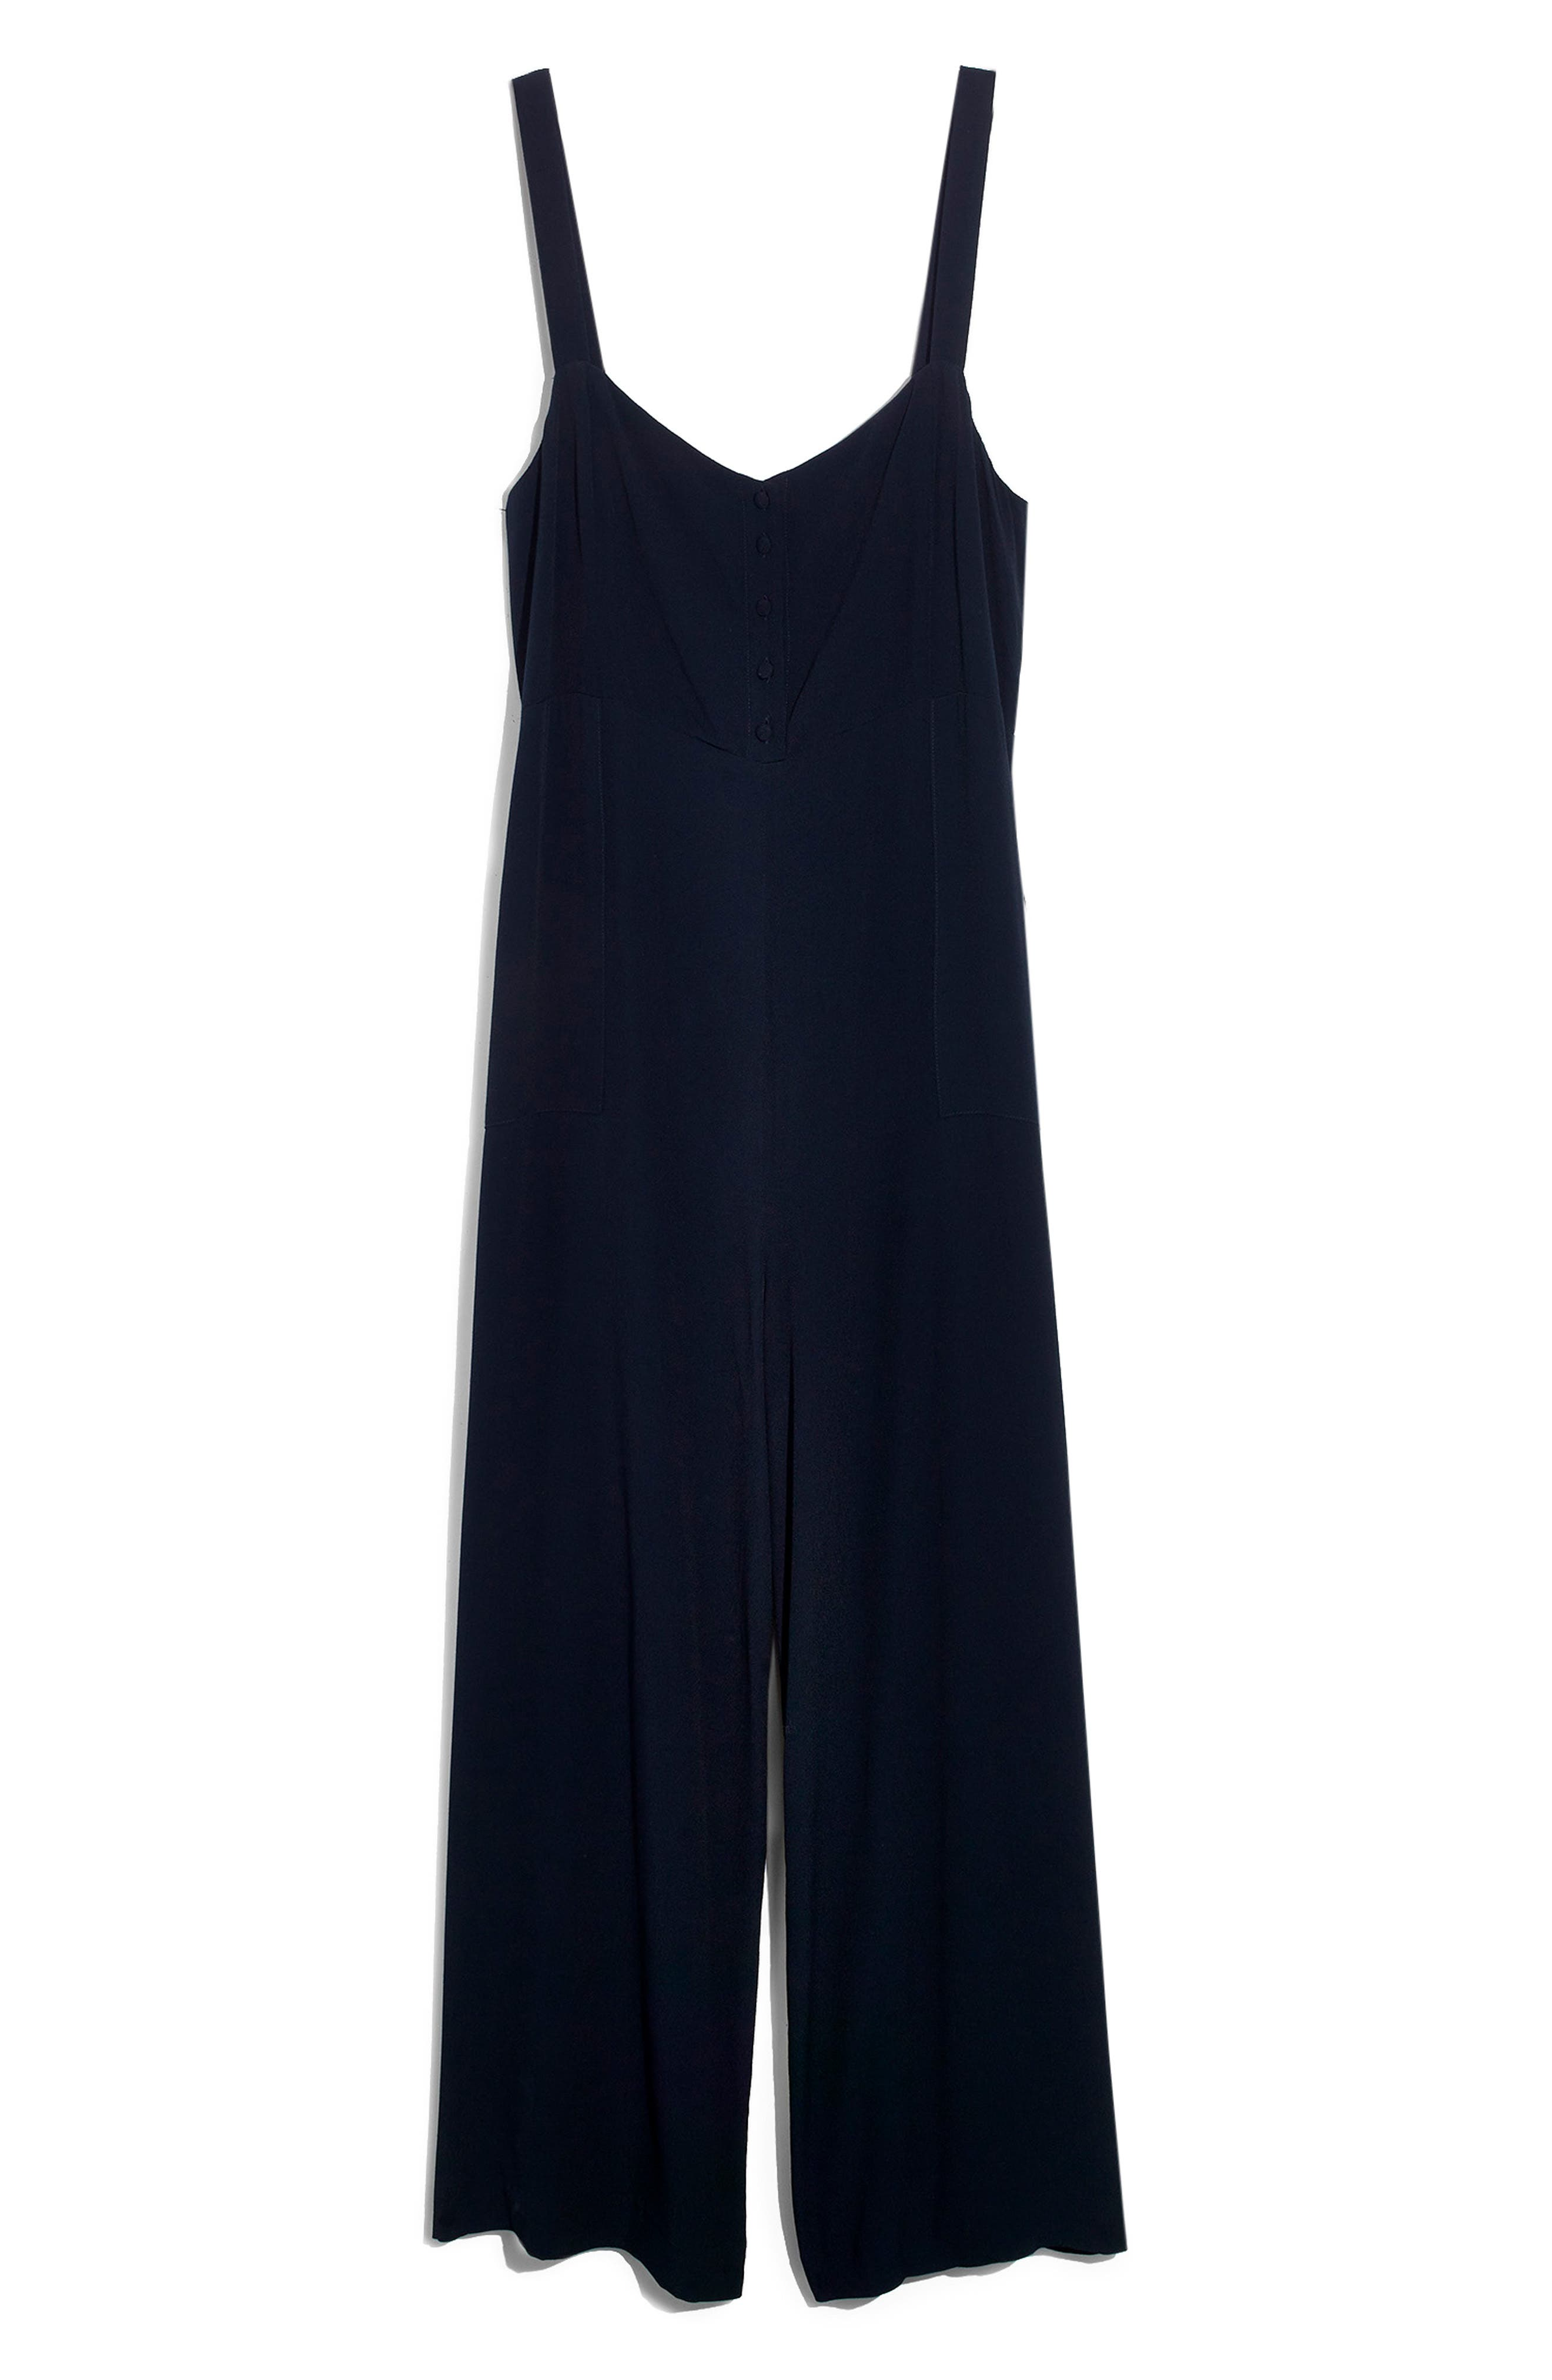 MADEWELL,                             Button Front Wide Leg Jumpsuit,                             Alternate thumbnail 4, color,                             400